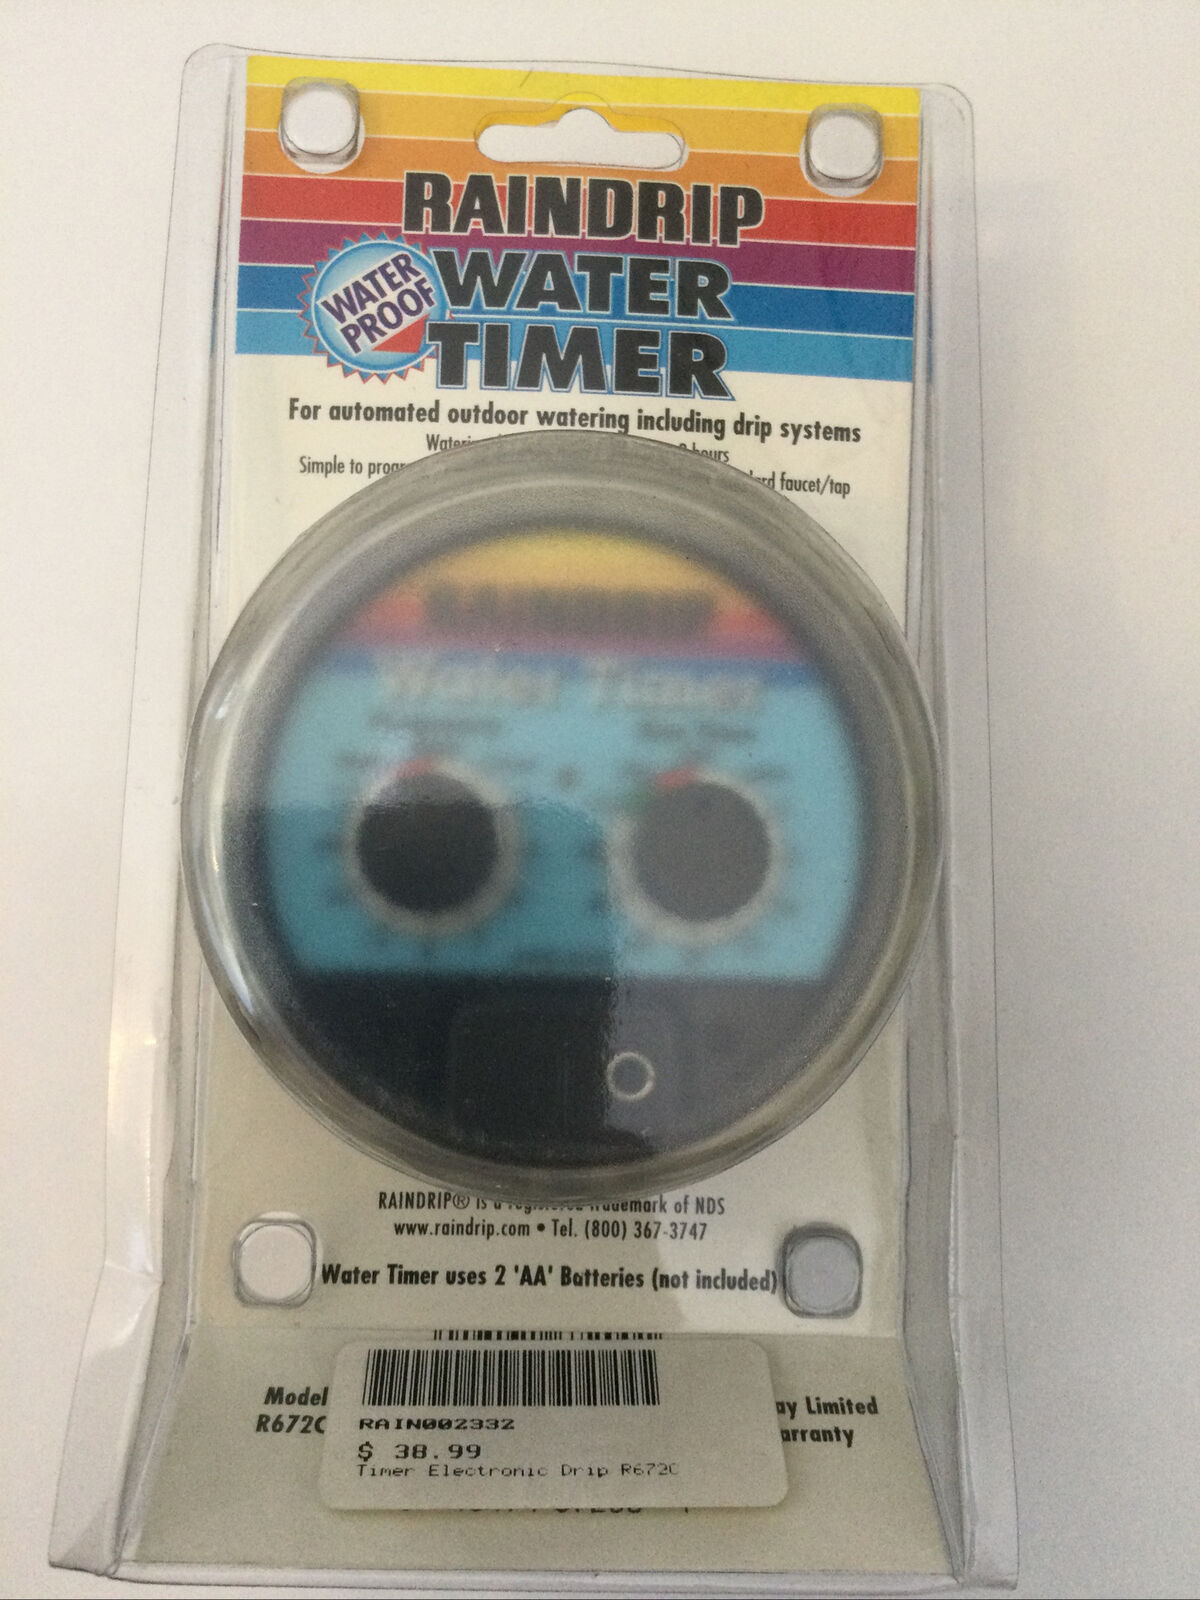 Raindrip R672C Water Timer for Automated Outdoor Watering/Drip Systems